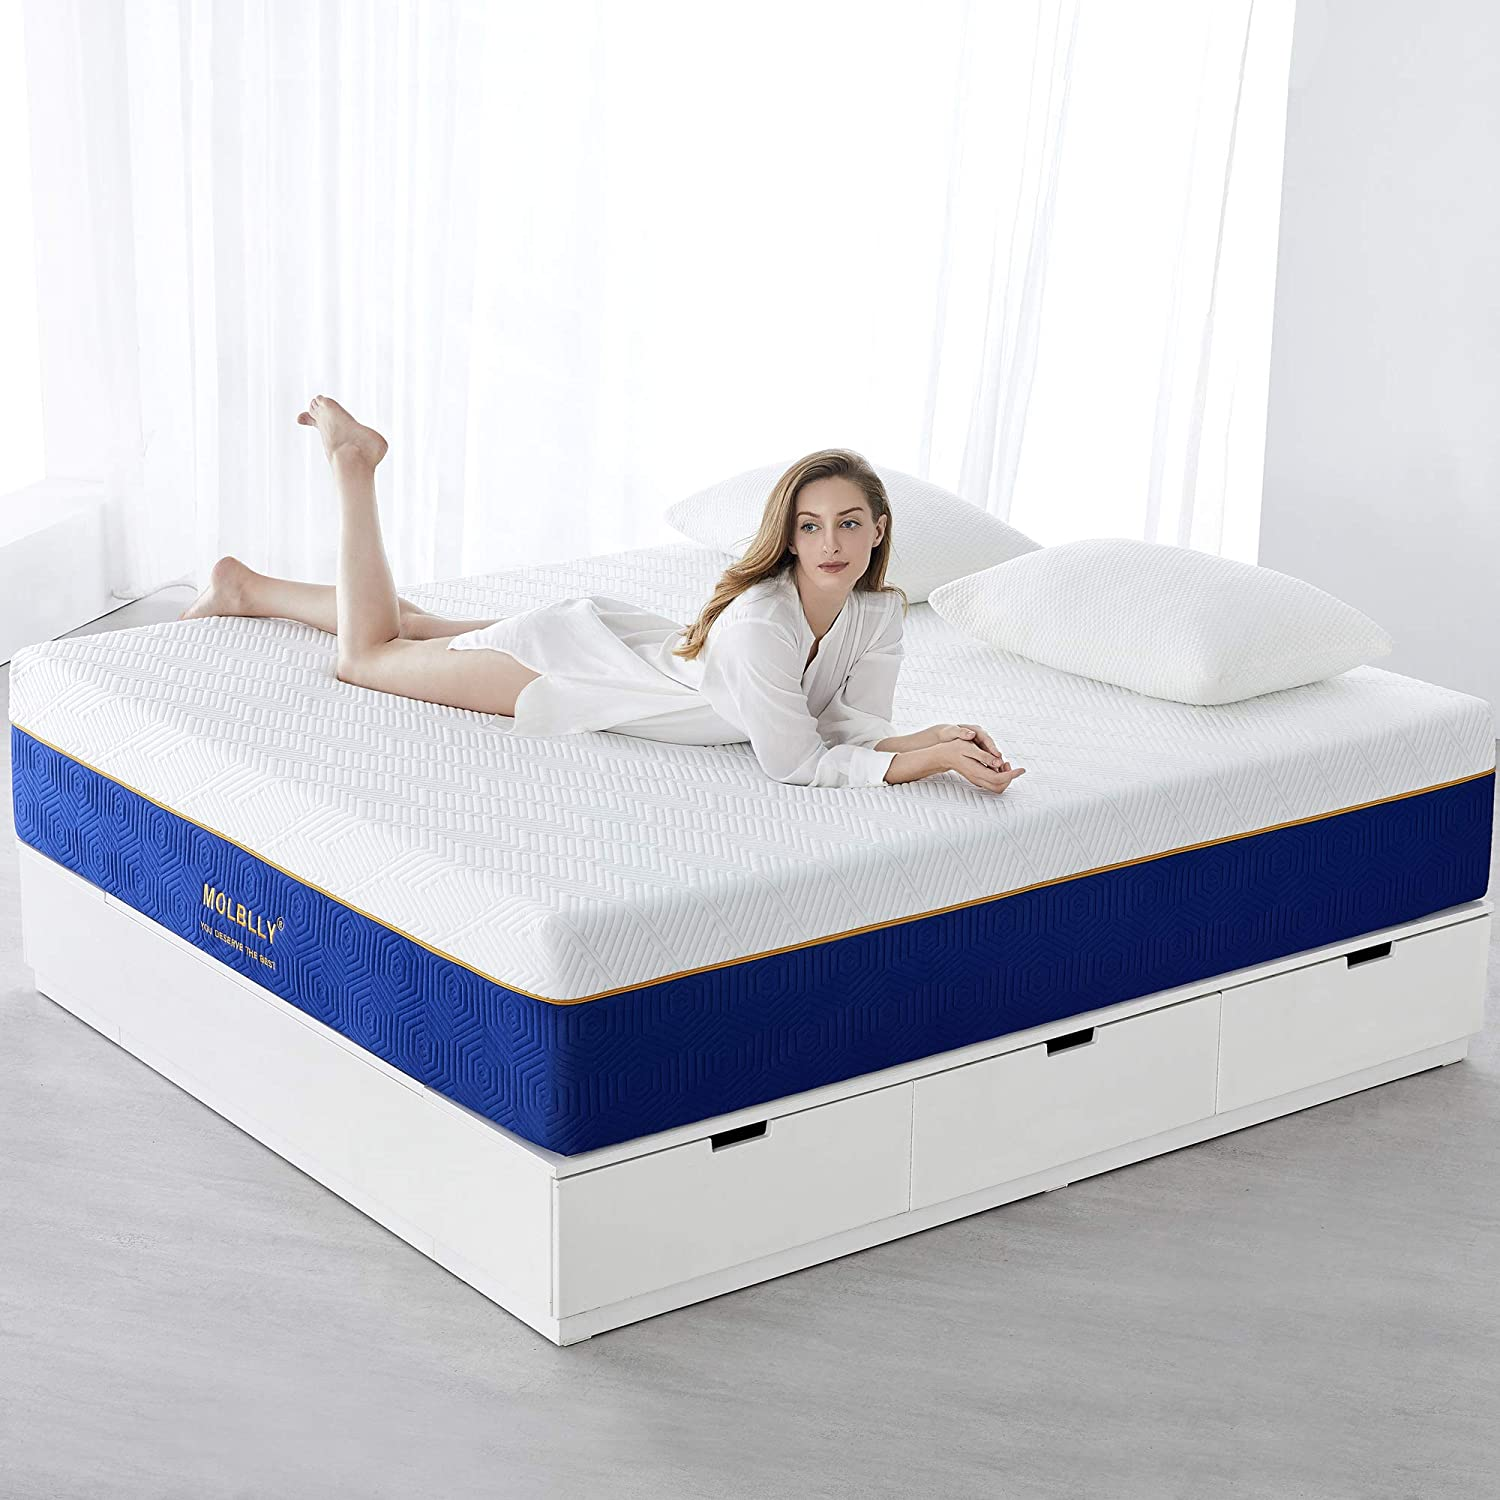 Molblly Queen Mattress, 14 inch Gel Memory Foam Mattress with Breathable Knitted Cover, Bed Mattress in a Box